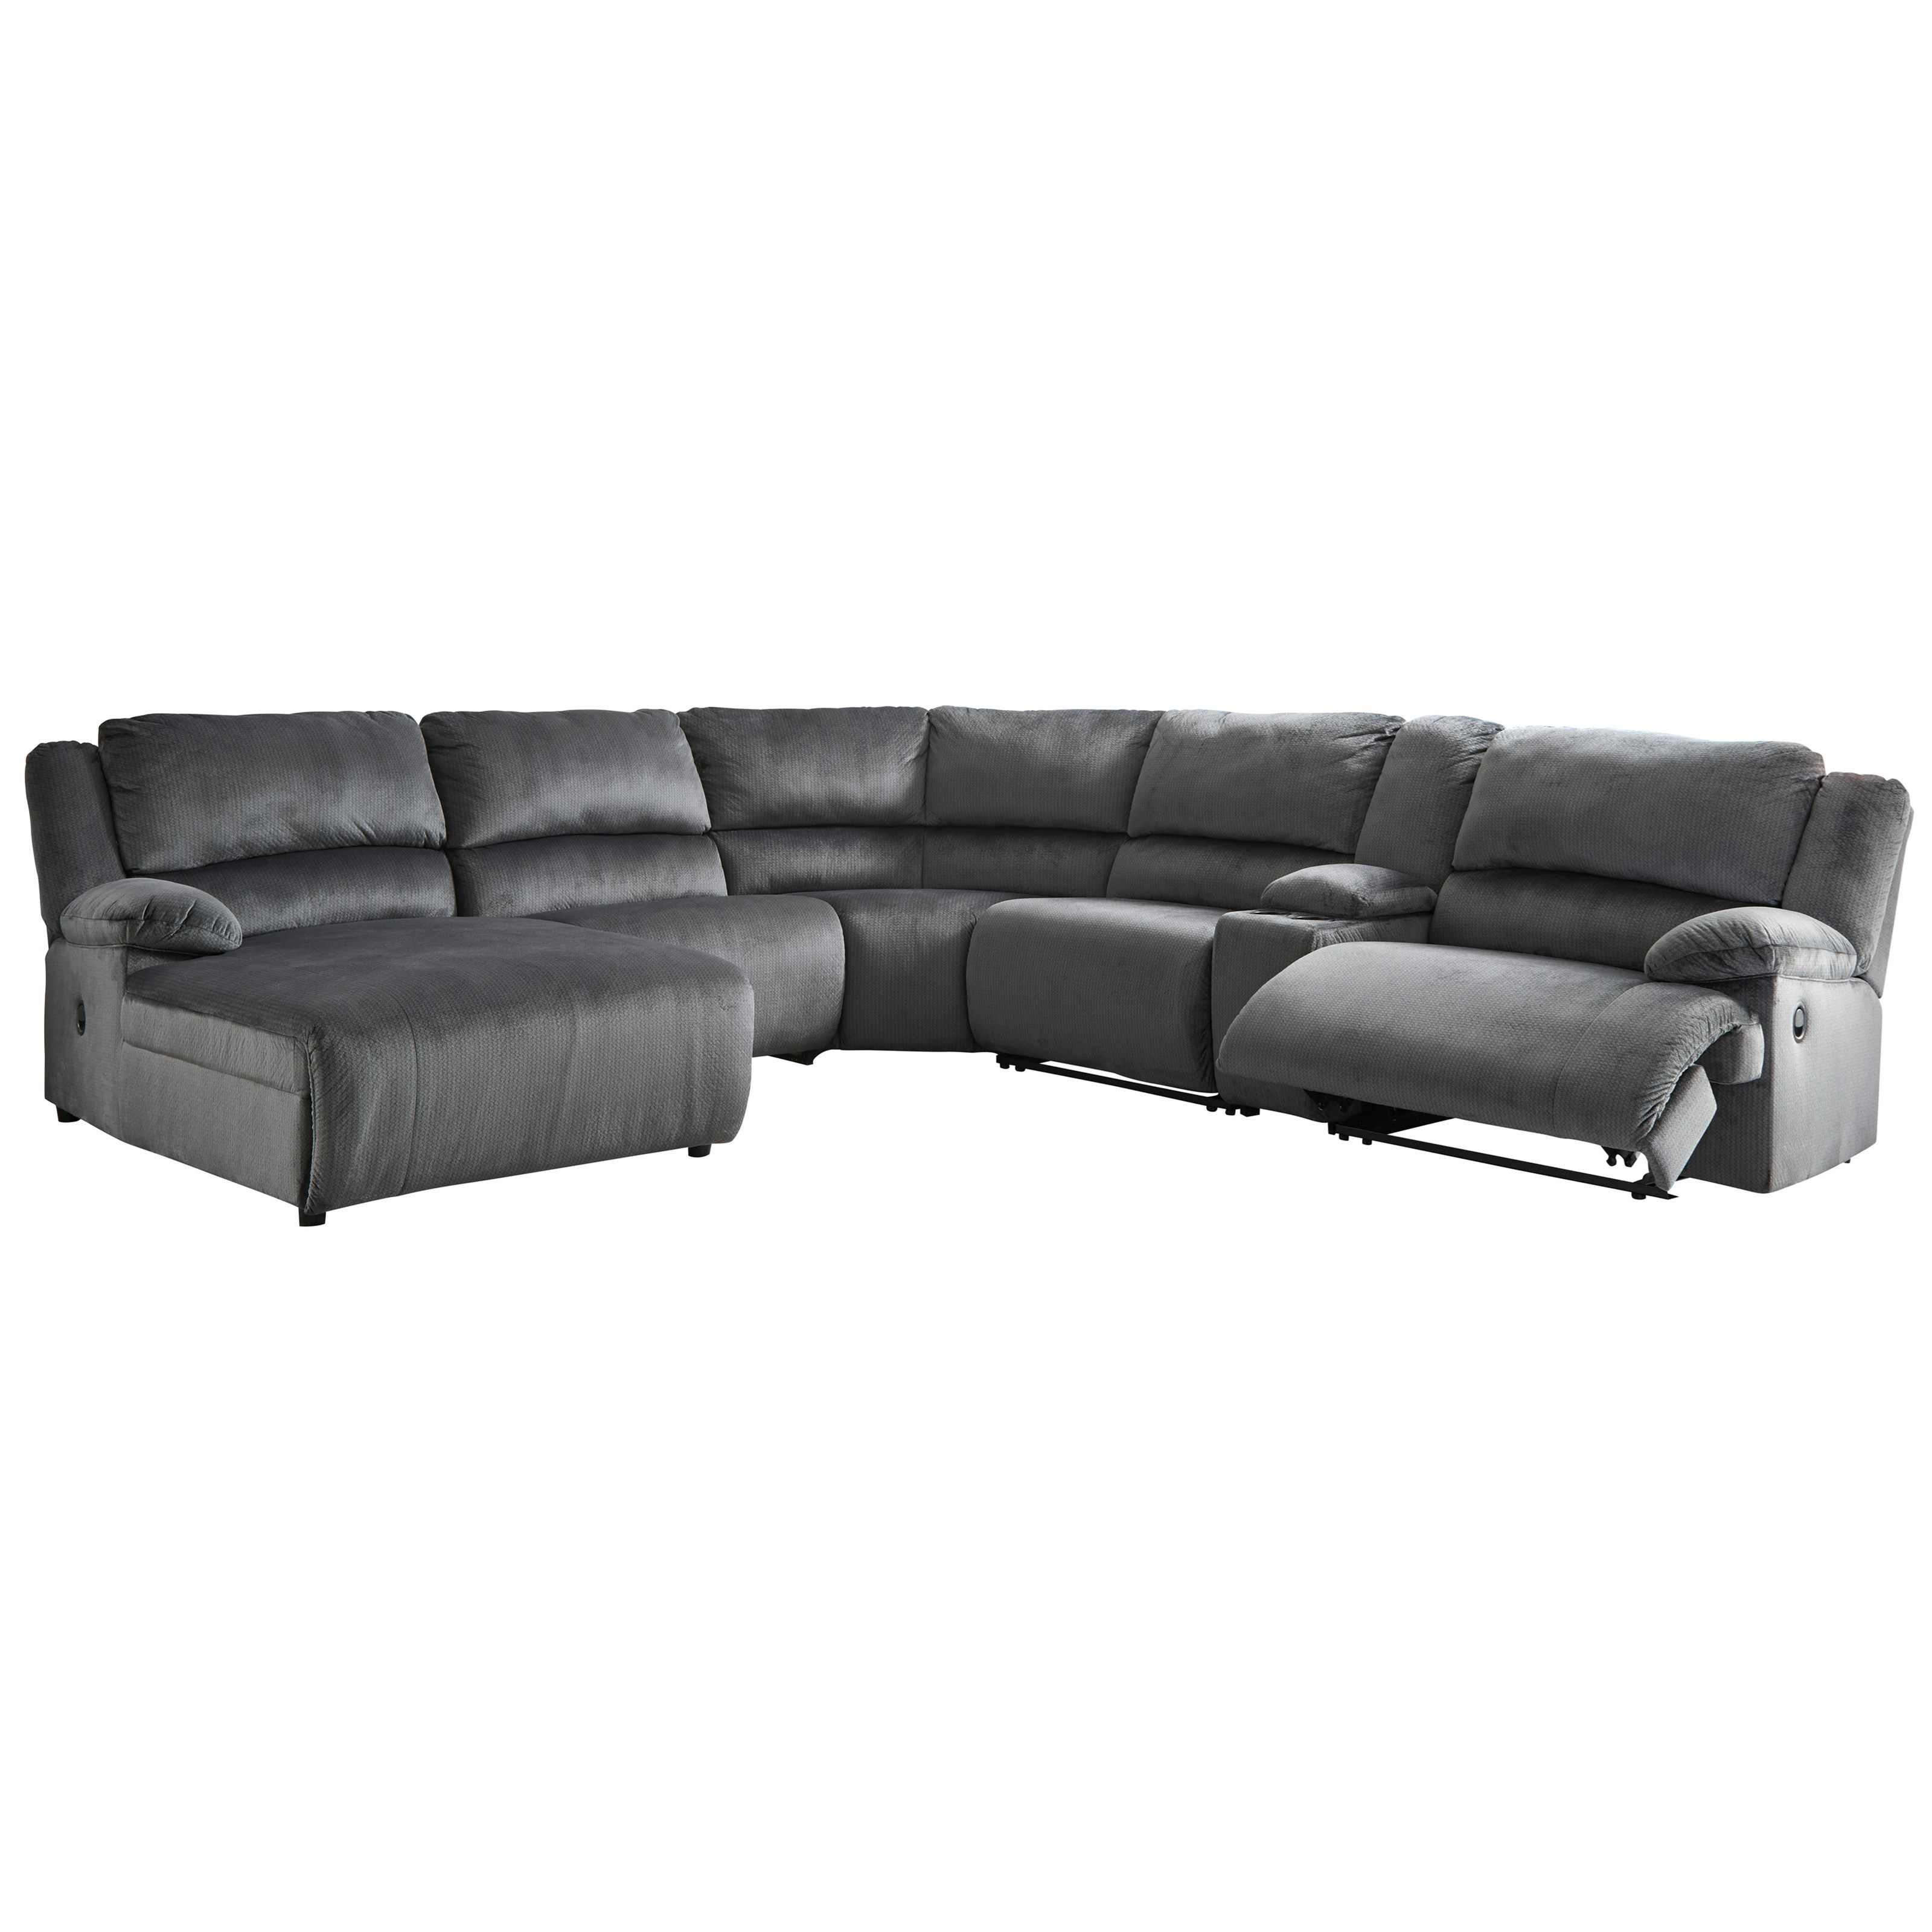 Power Reclining Sectional With Right Press Back Chaise By: Reclining Sectional With Chaise & Console By Signature